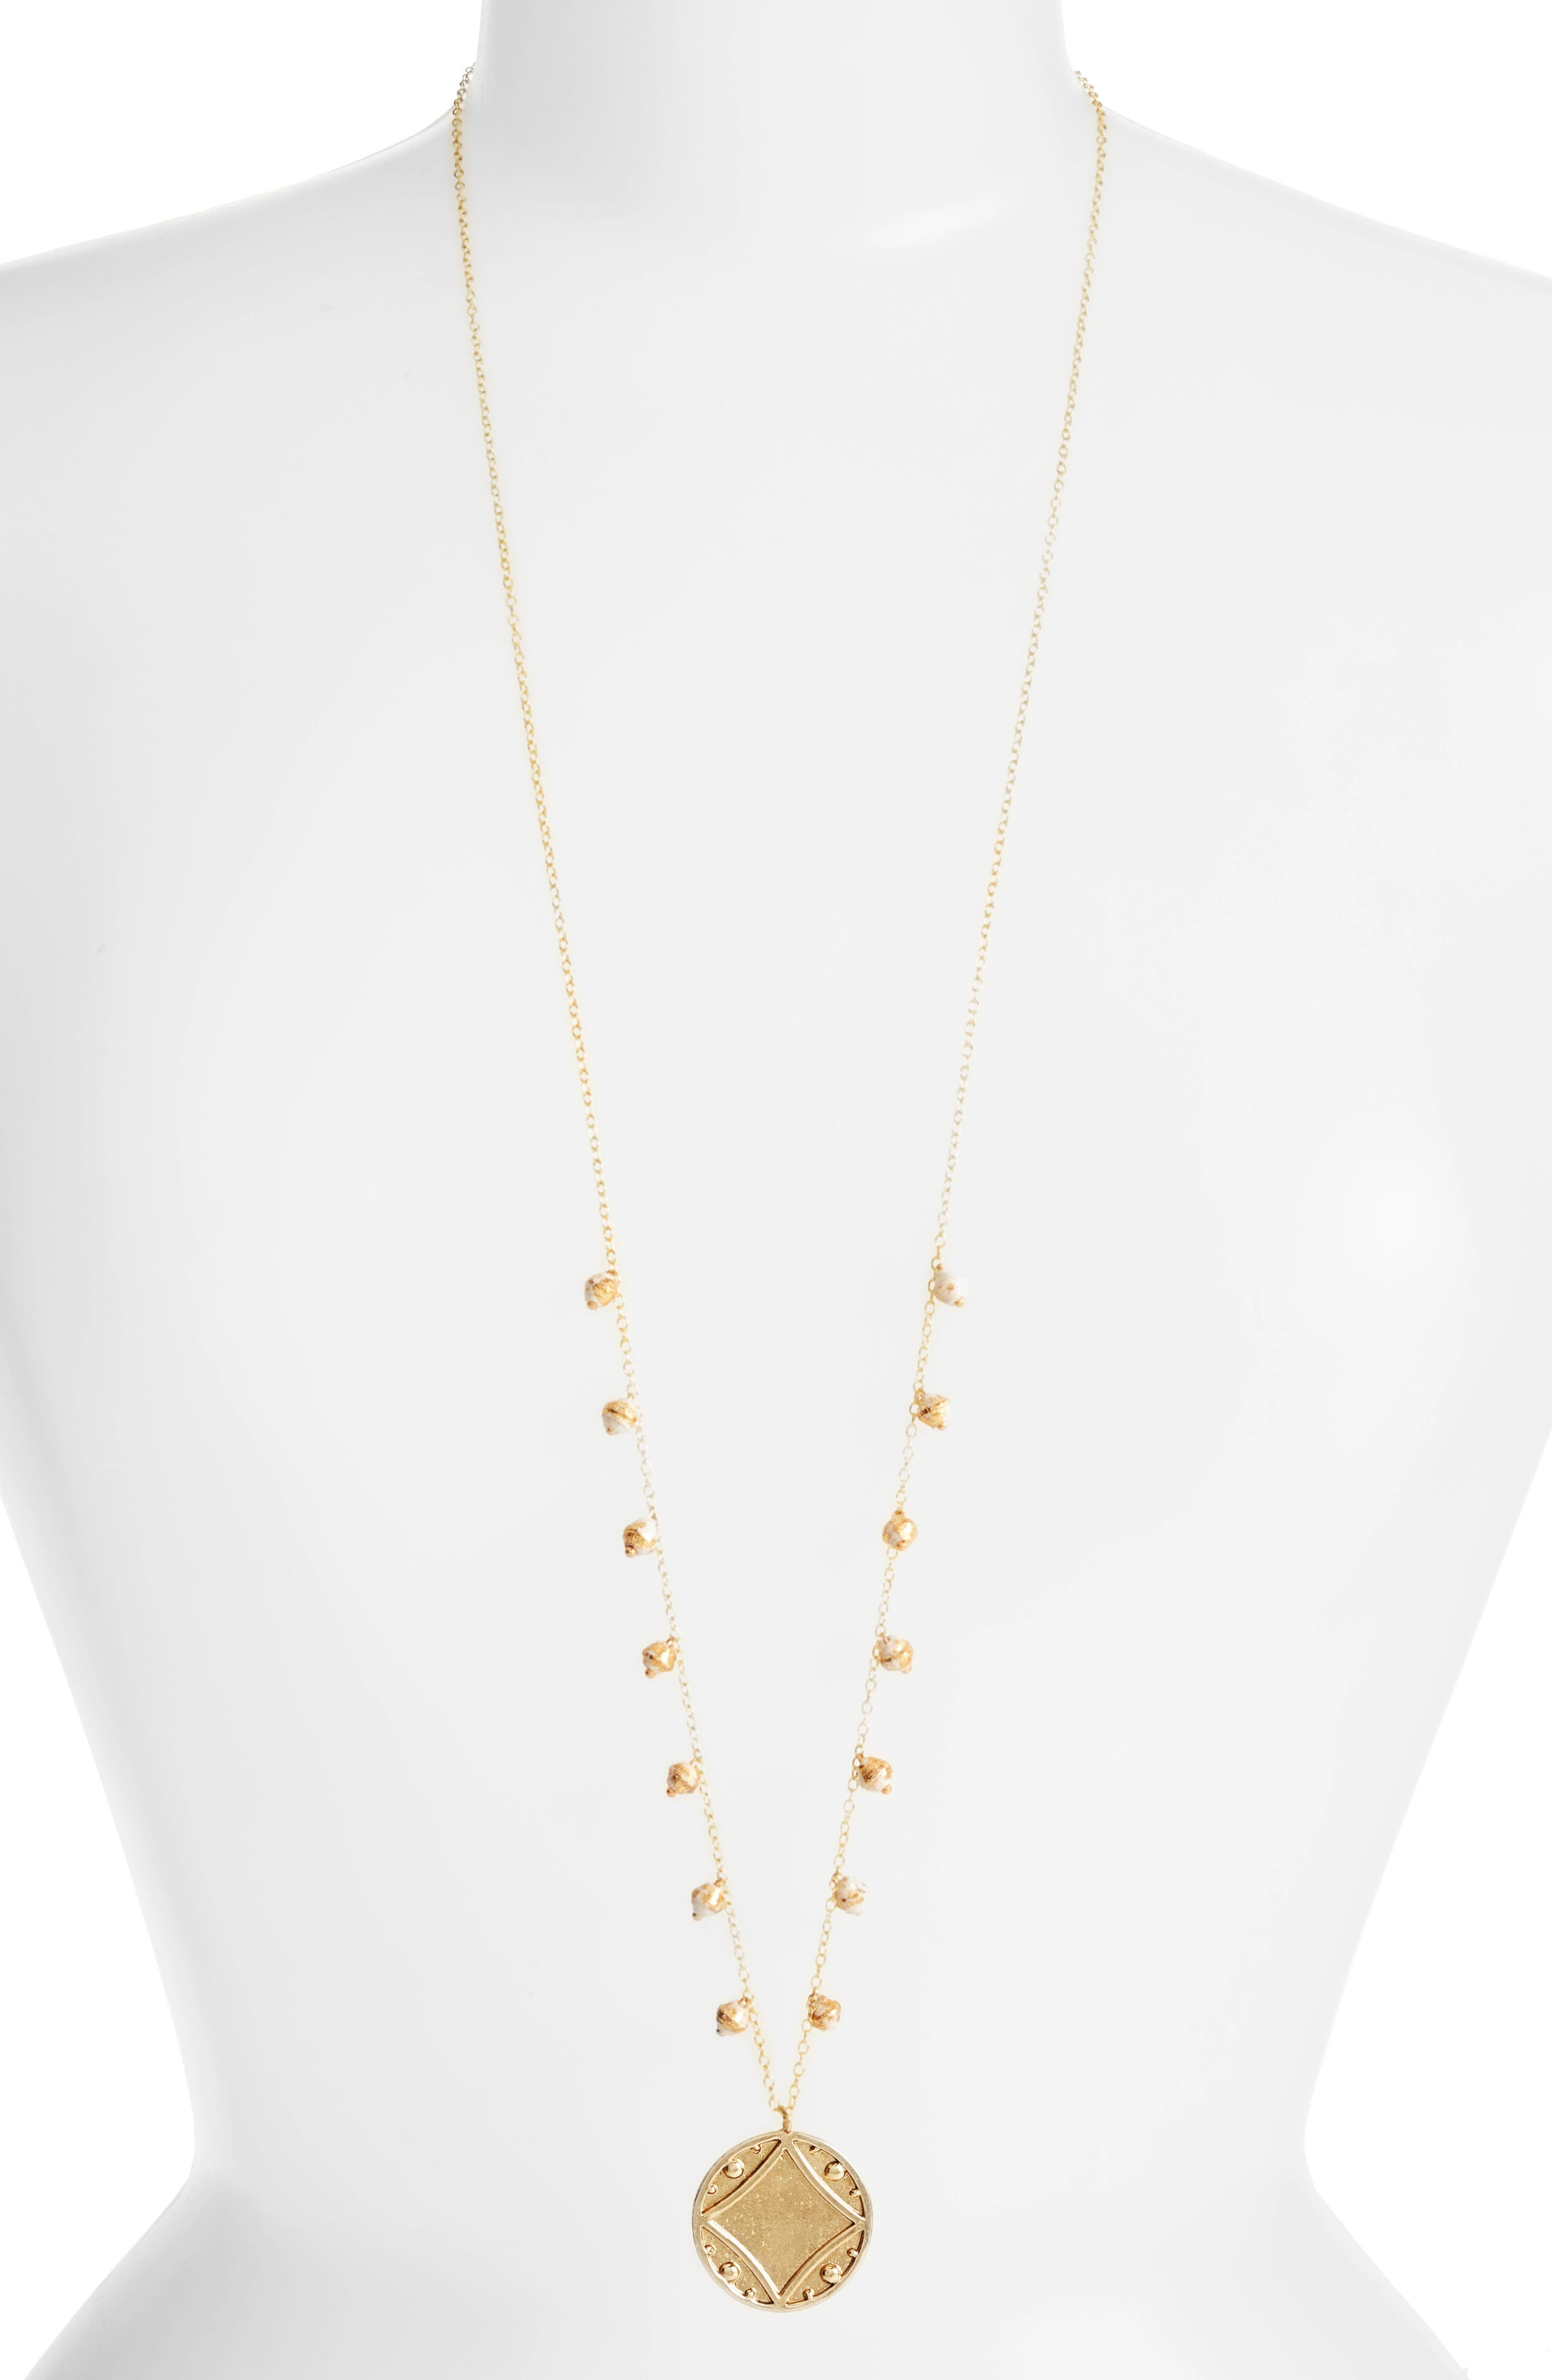 31 Bits Early Light Pendant Necklace